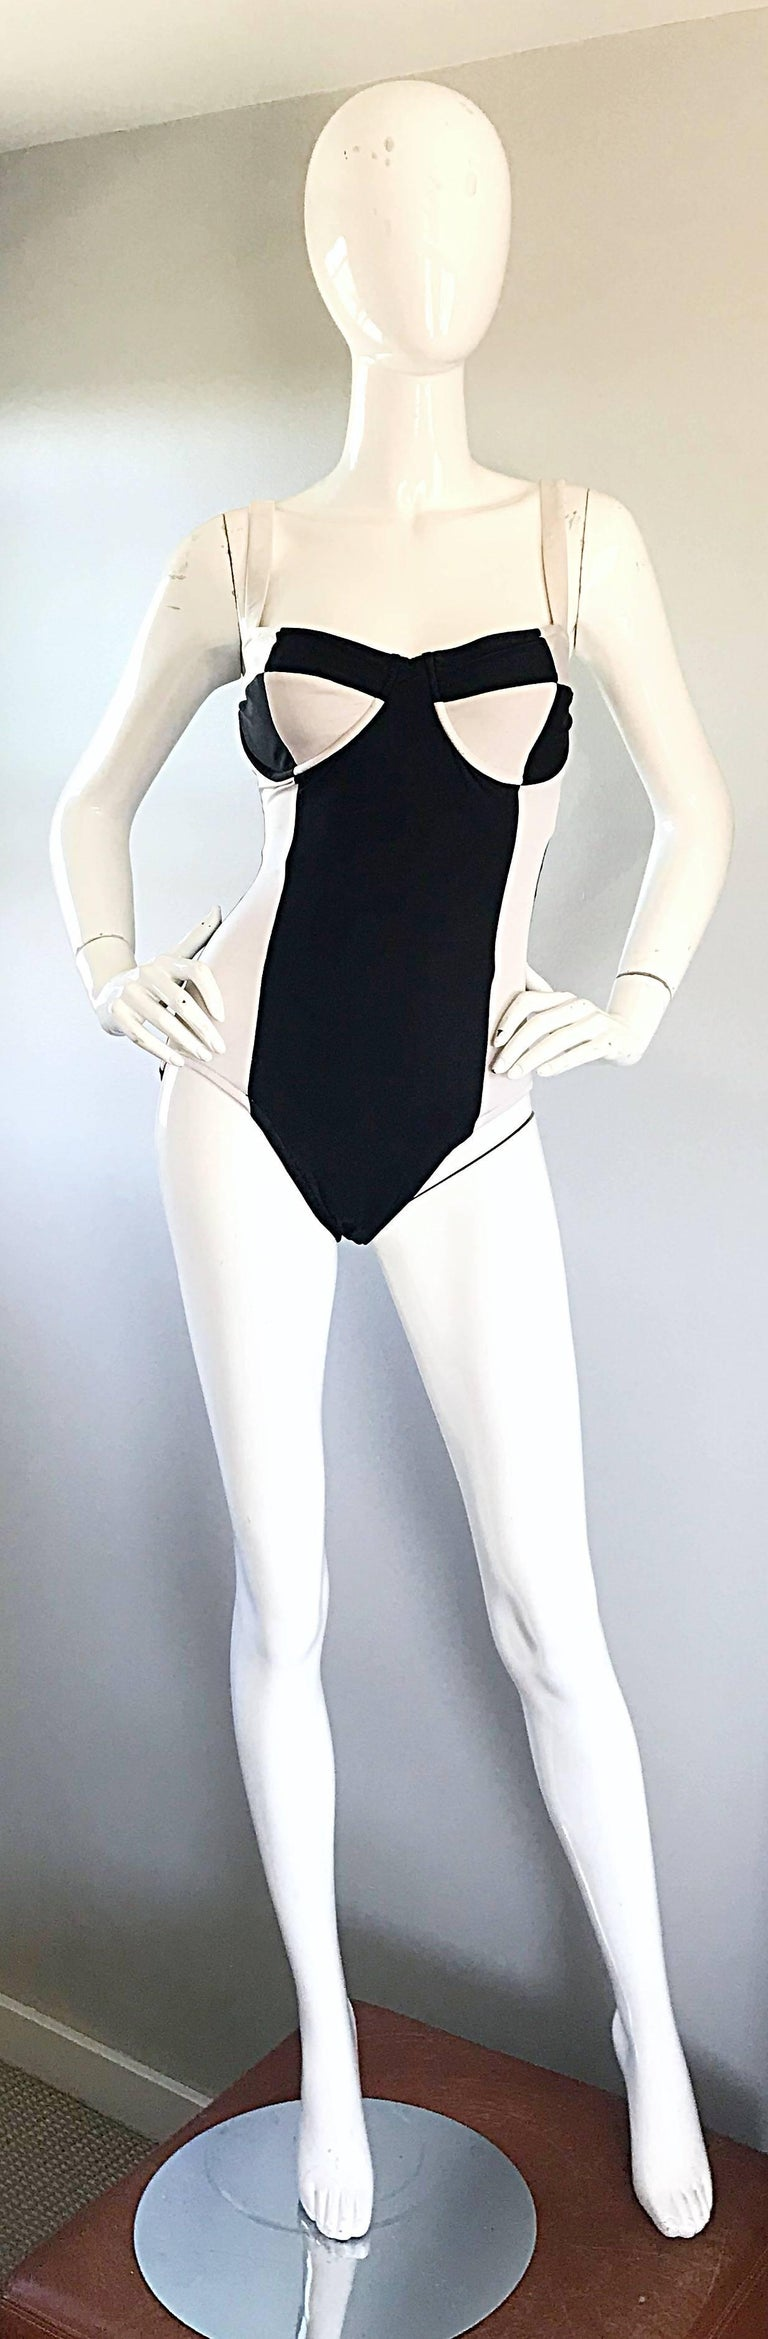 aa0f20795f Vintage BIll Blass Black and White Avant Garde 1990s One Piece Swimsuit  Bodysuit In Excellent Condition